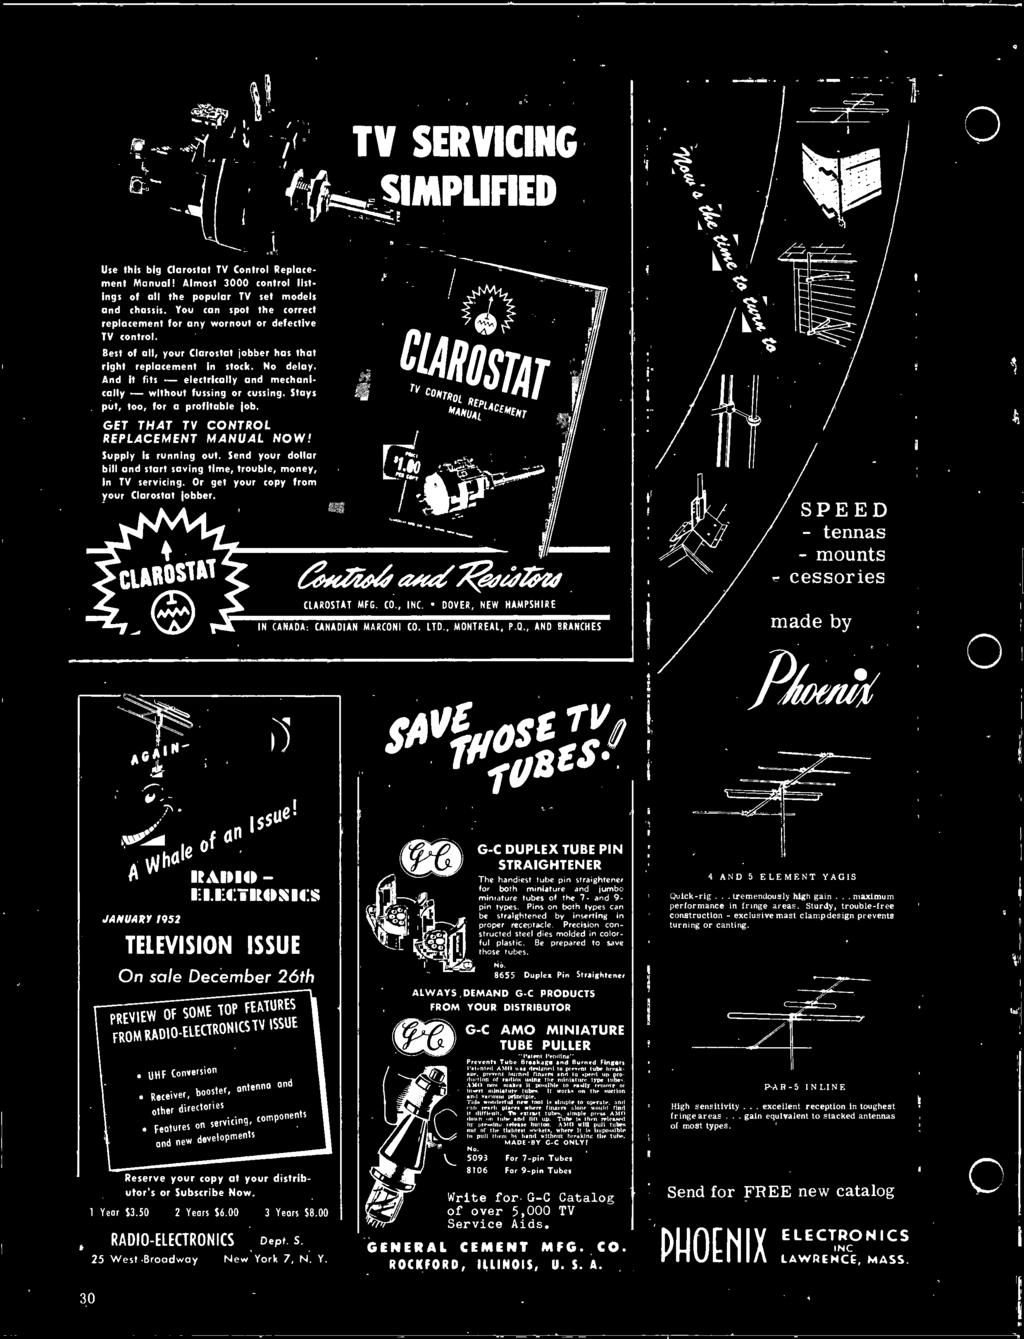 29 Covering Photofact Pdf Ic 484 Am Radio Receiver D70 Clarostat Mfg Co Inc Dover New Hampshire In